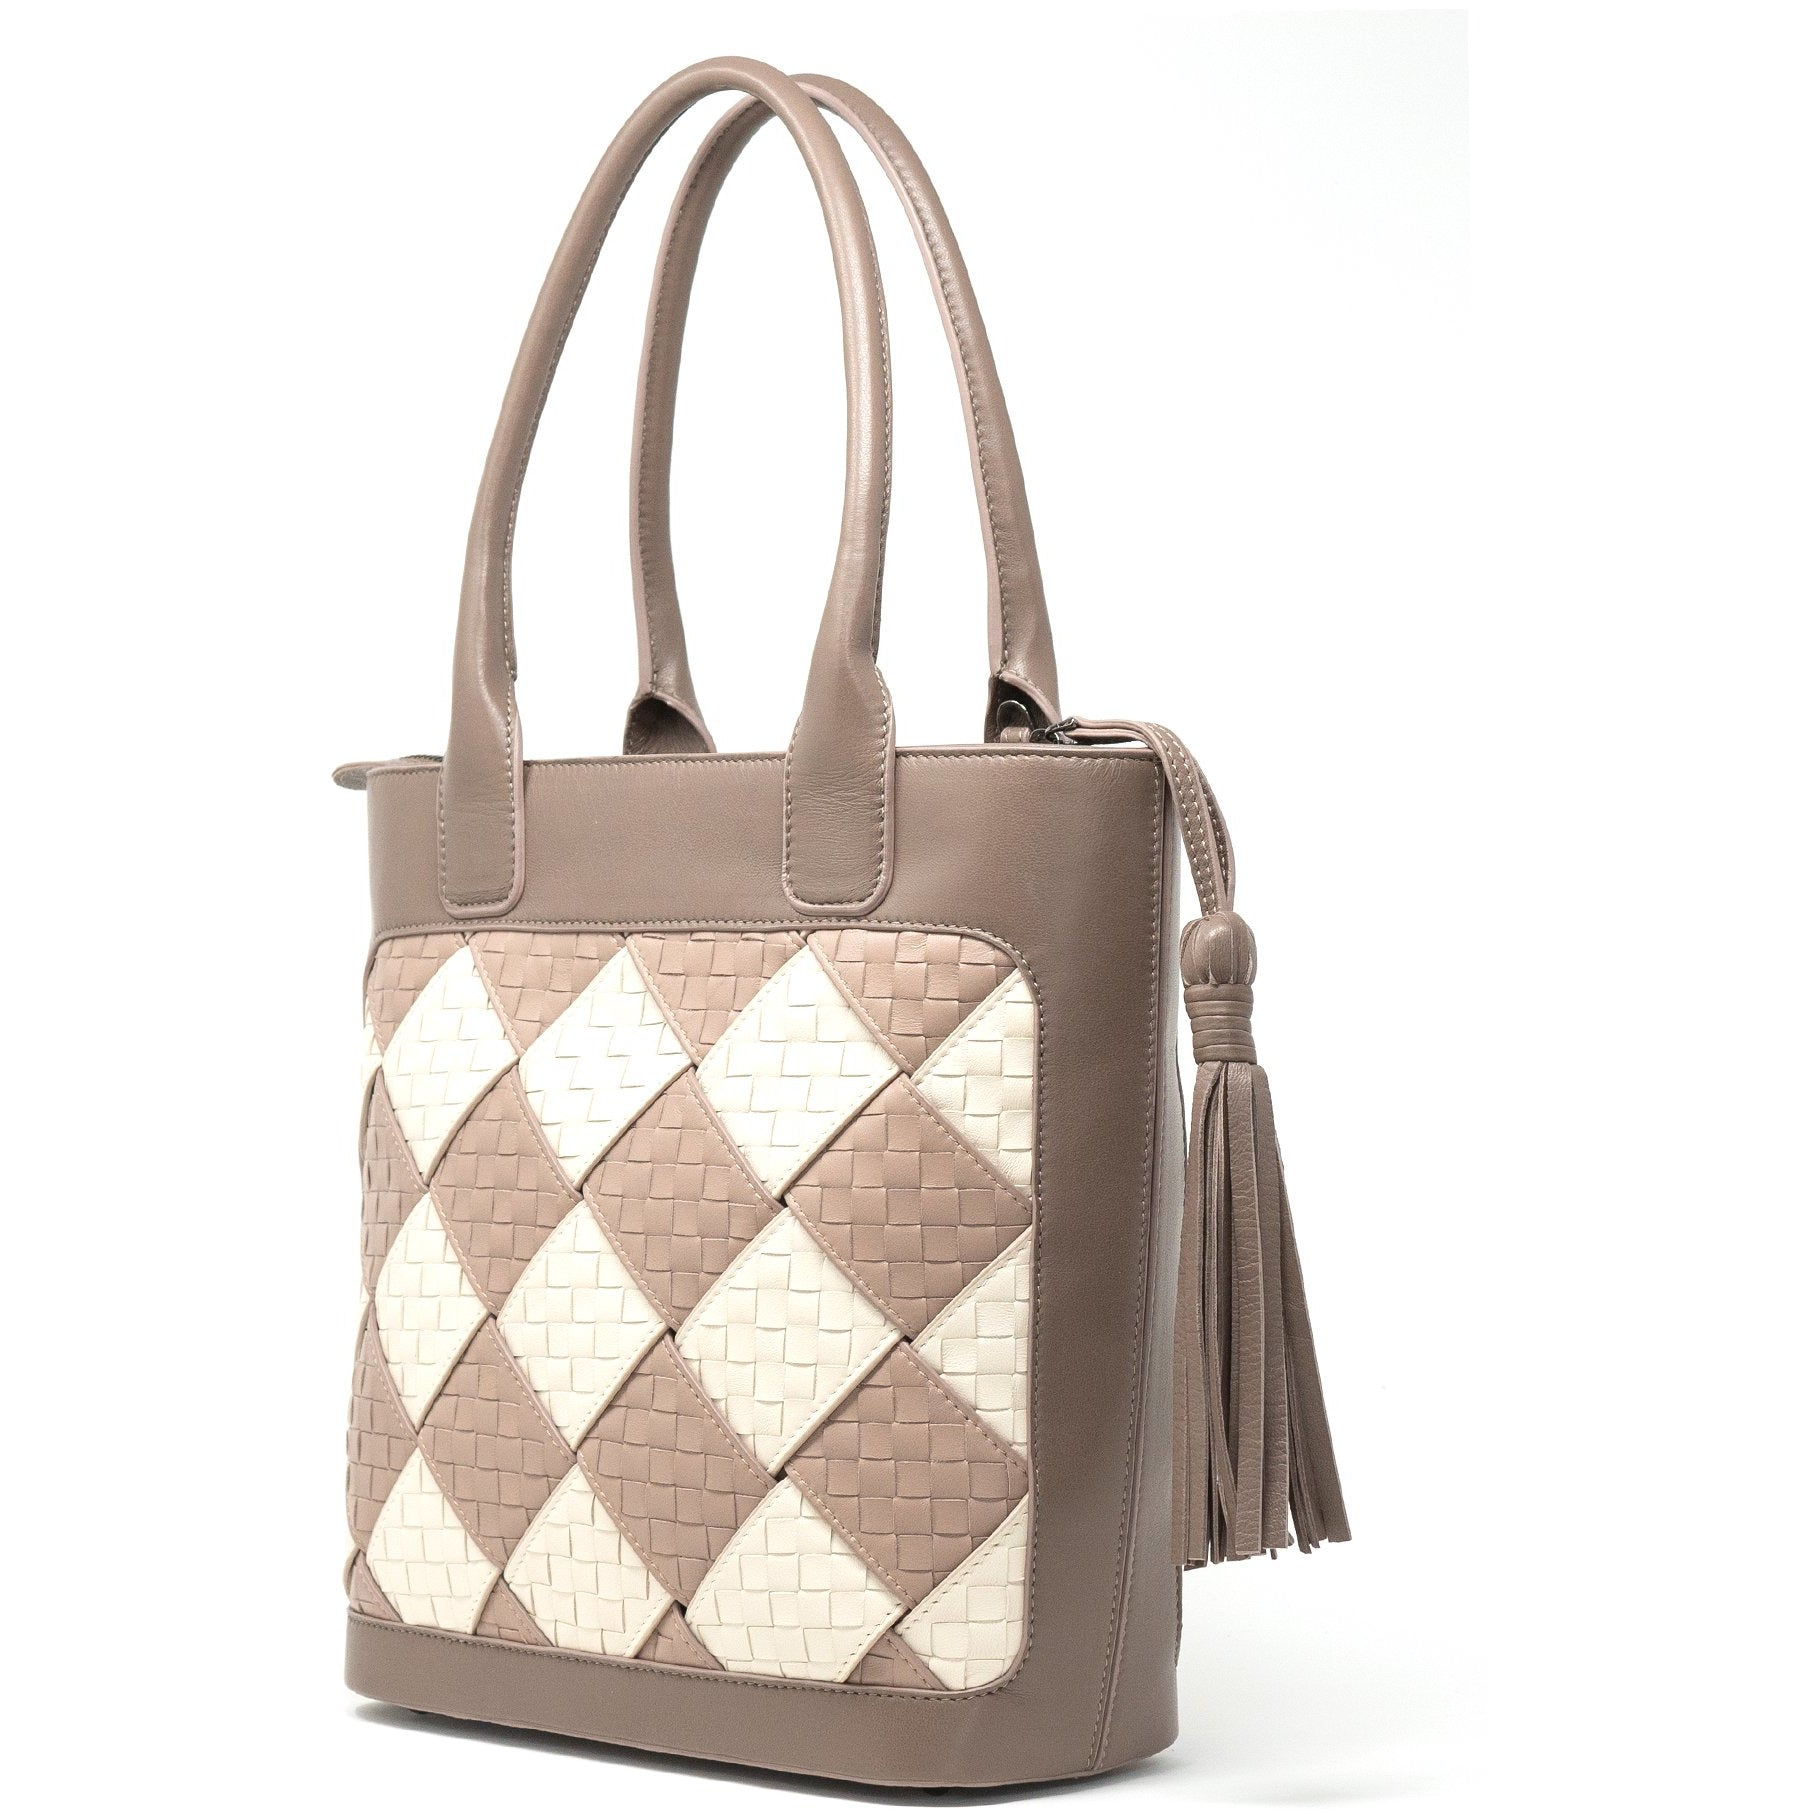 JT316 5570 H28 Leather Intrecciato Bold Tote Bag - Jennifer Tattanelli